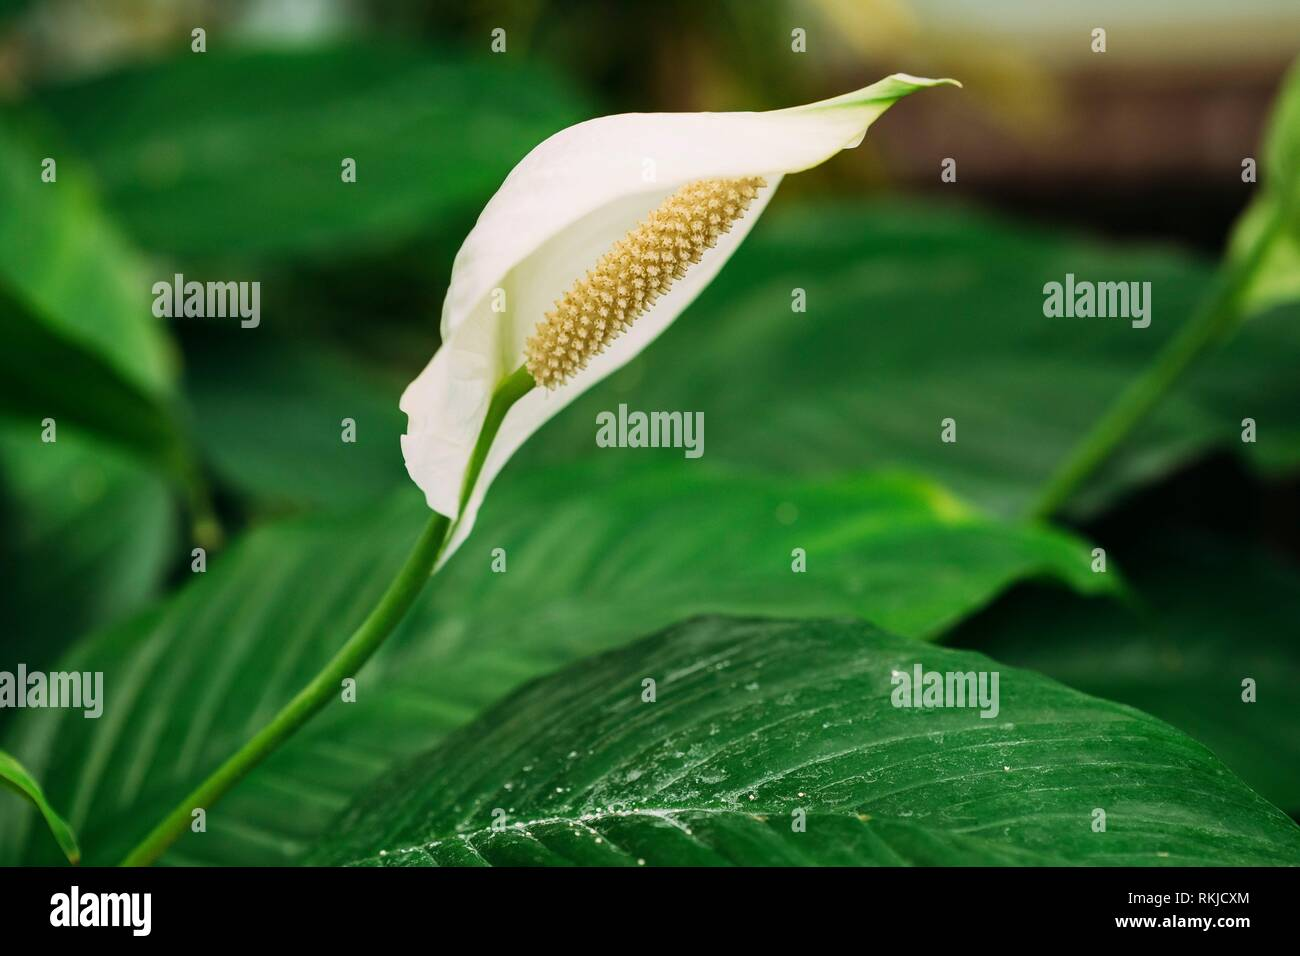 Green Leaves Of Plant Flower Spathiphyllum. It Is A Genus Of About 40 Species Of Monocotyledonous Flowering Plants In Family Araceae, Native To - Stock Image